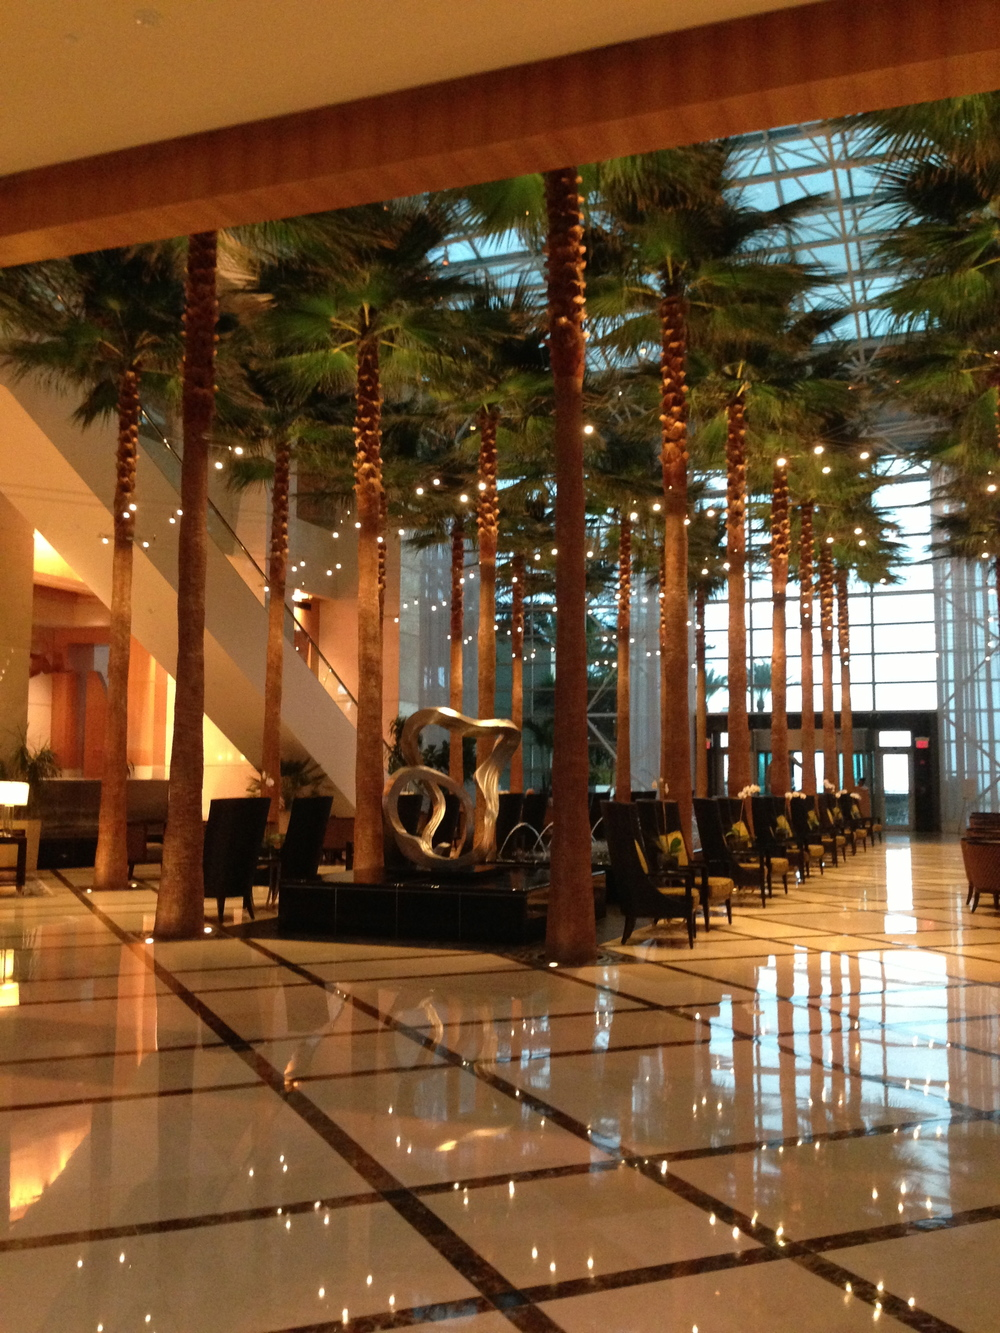 Lobby of Westin Diplomat in Hollywood, Florida - host of the Niche Parent 2013 Conference.